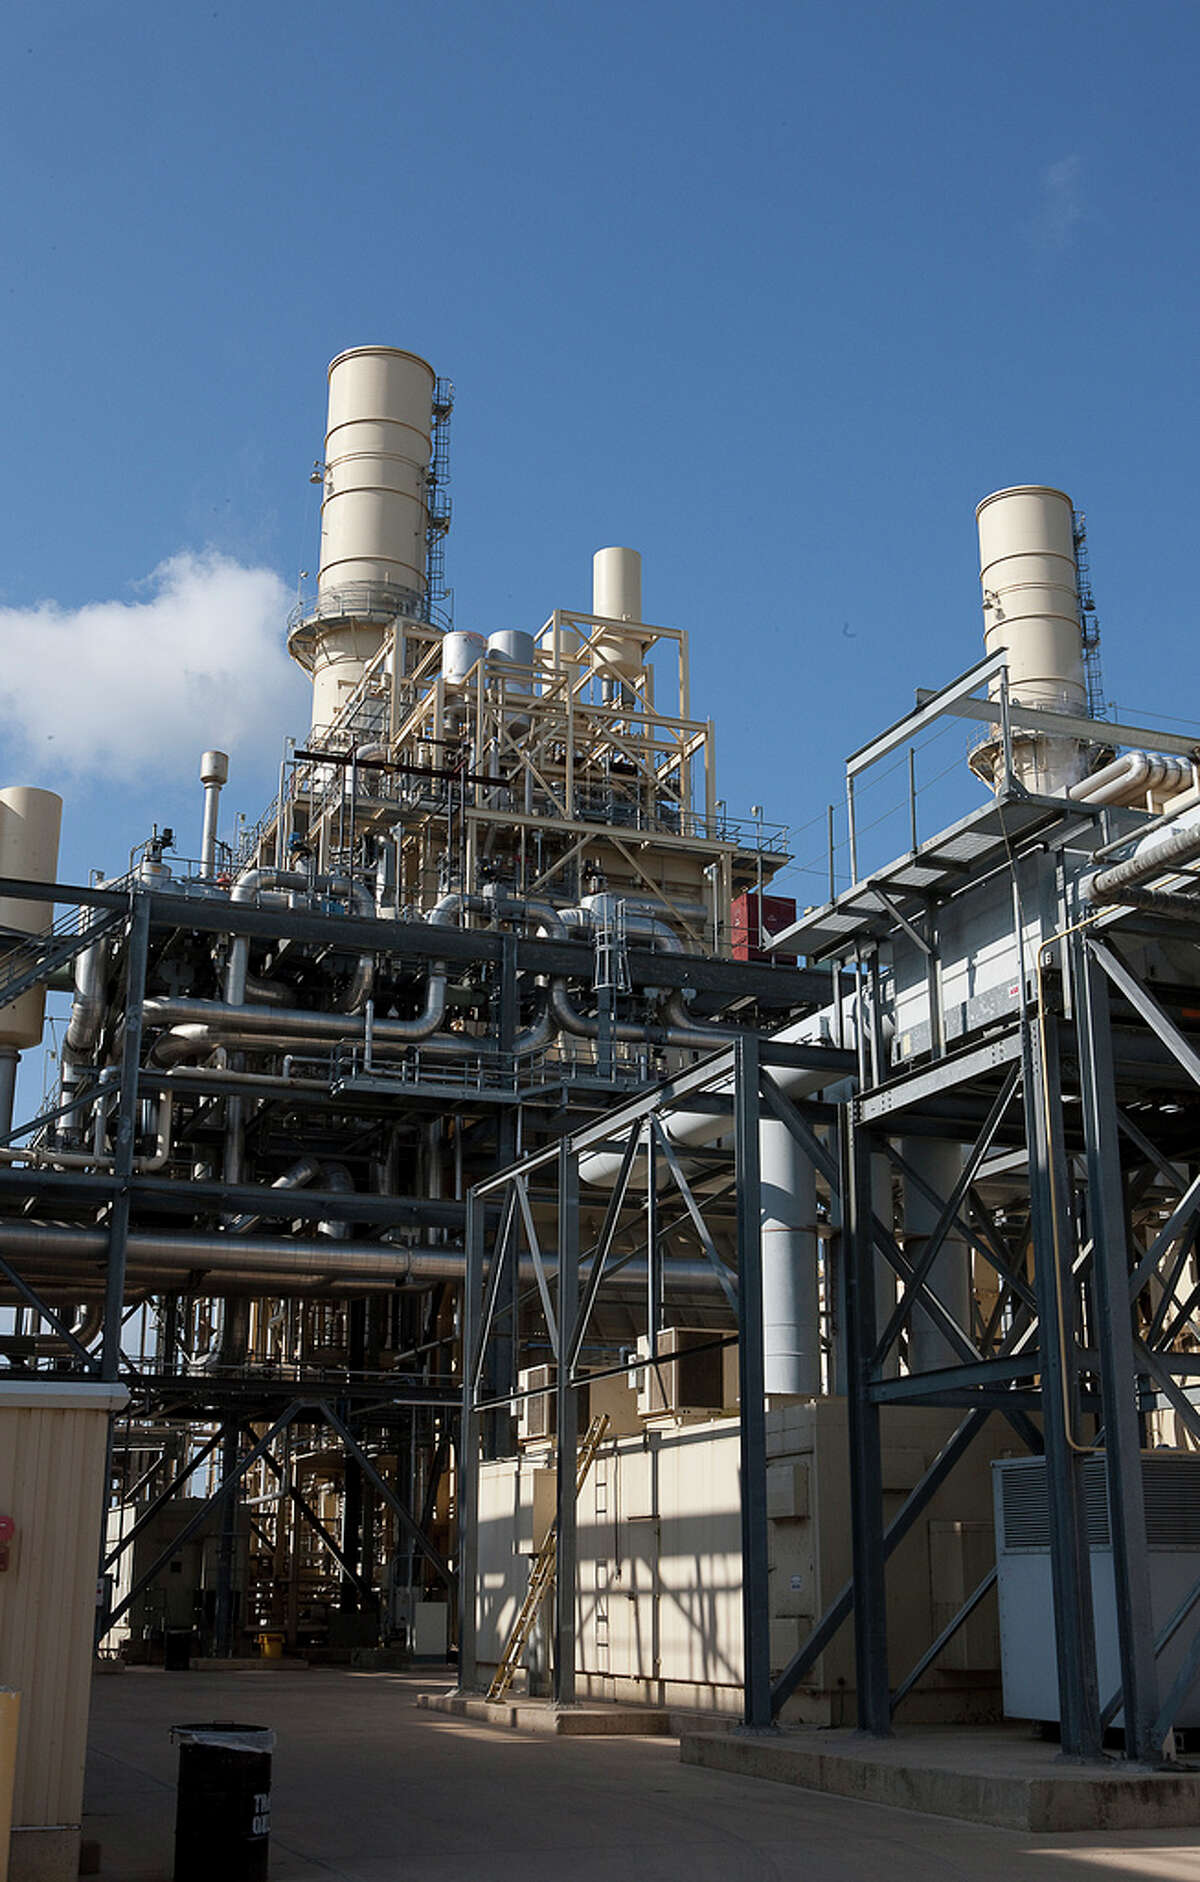 CPS' Braunig plant is fired by natural gas, which supplies about one-fifth of metro San Antonio's electricity.